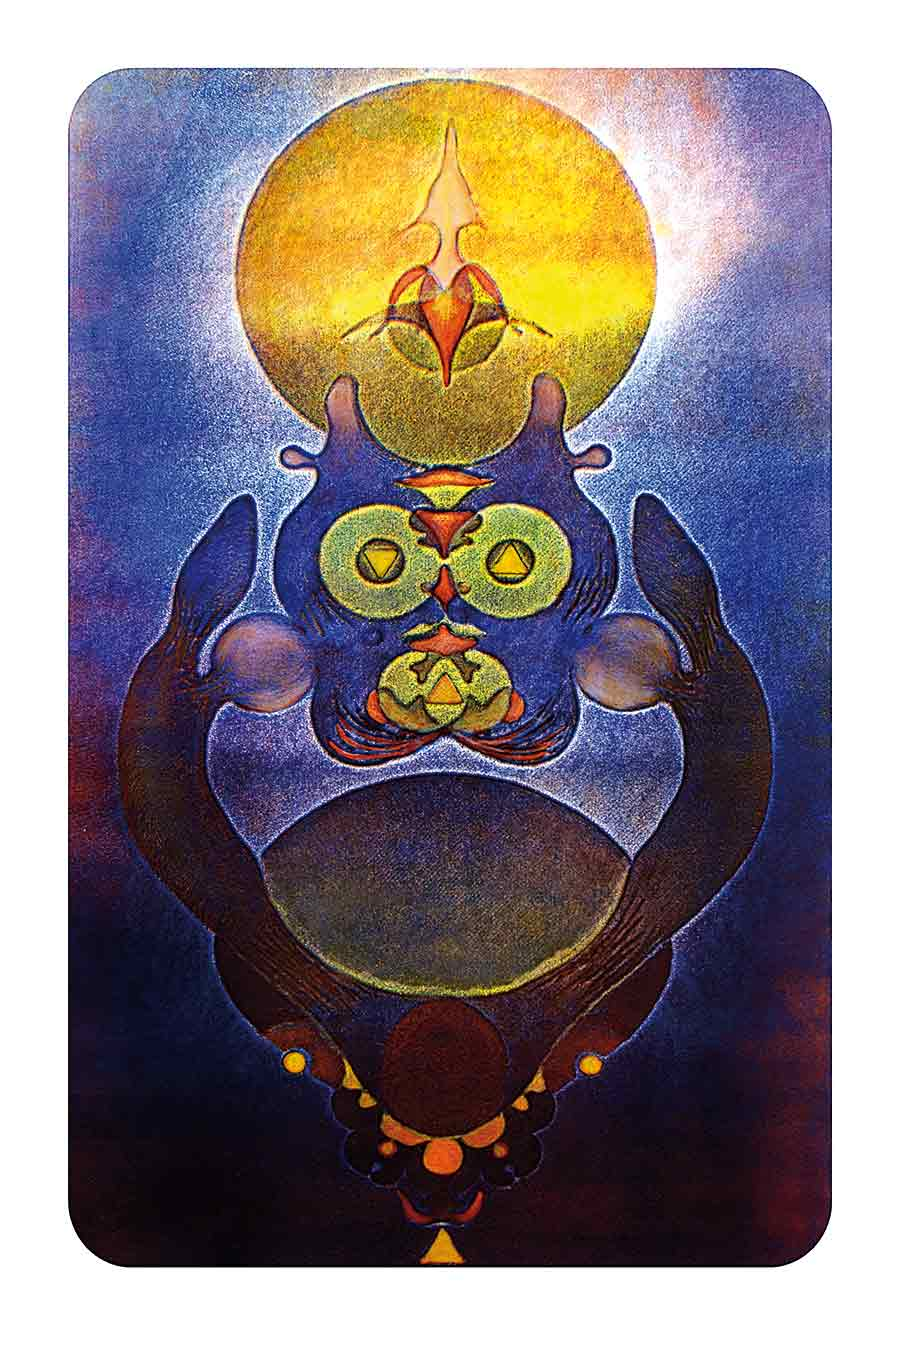 Totem, original Print-Painting and Art Print by Wieslaw Sadurski